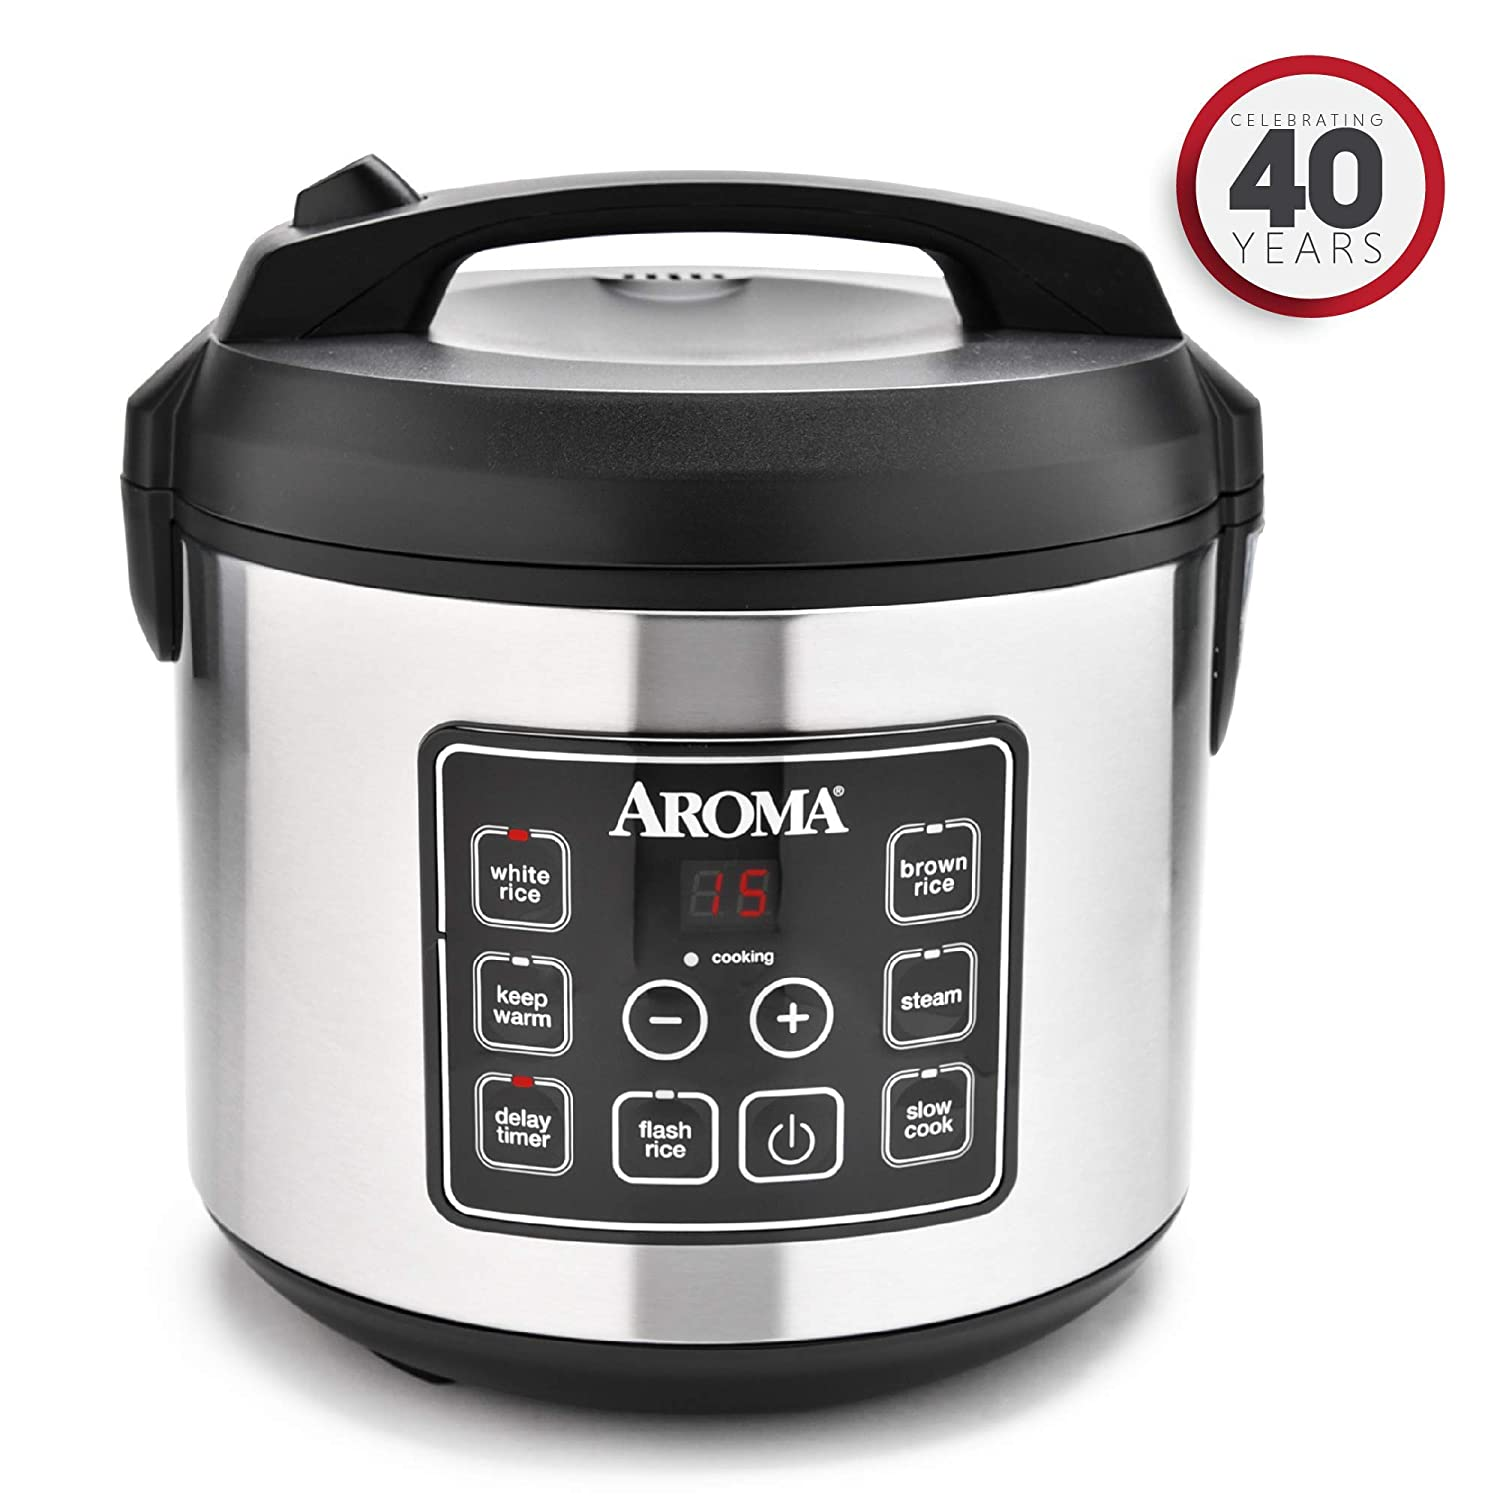 Aroma Housewares 20 Cup Cooked (10 cup uncooked) Digital Rice Cooker, Slow Cooker, Food Steamer, SS Exterior (ARC-150SB) (Renewed)